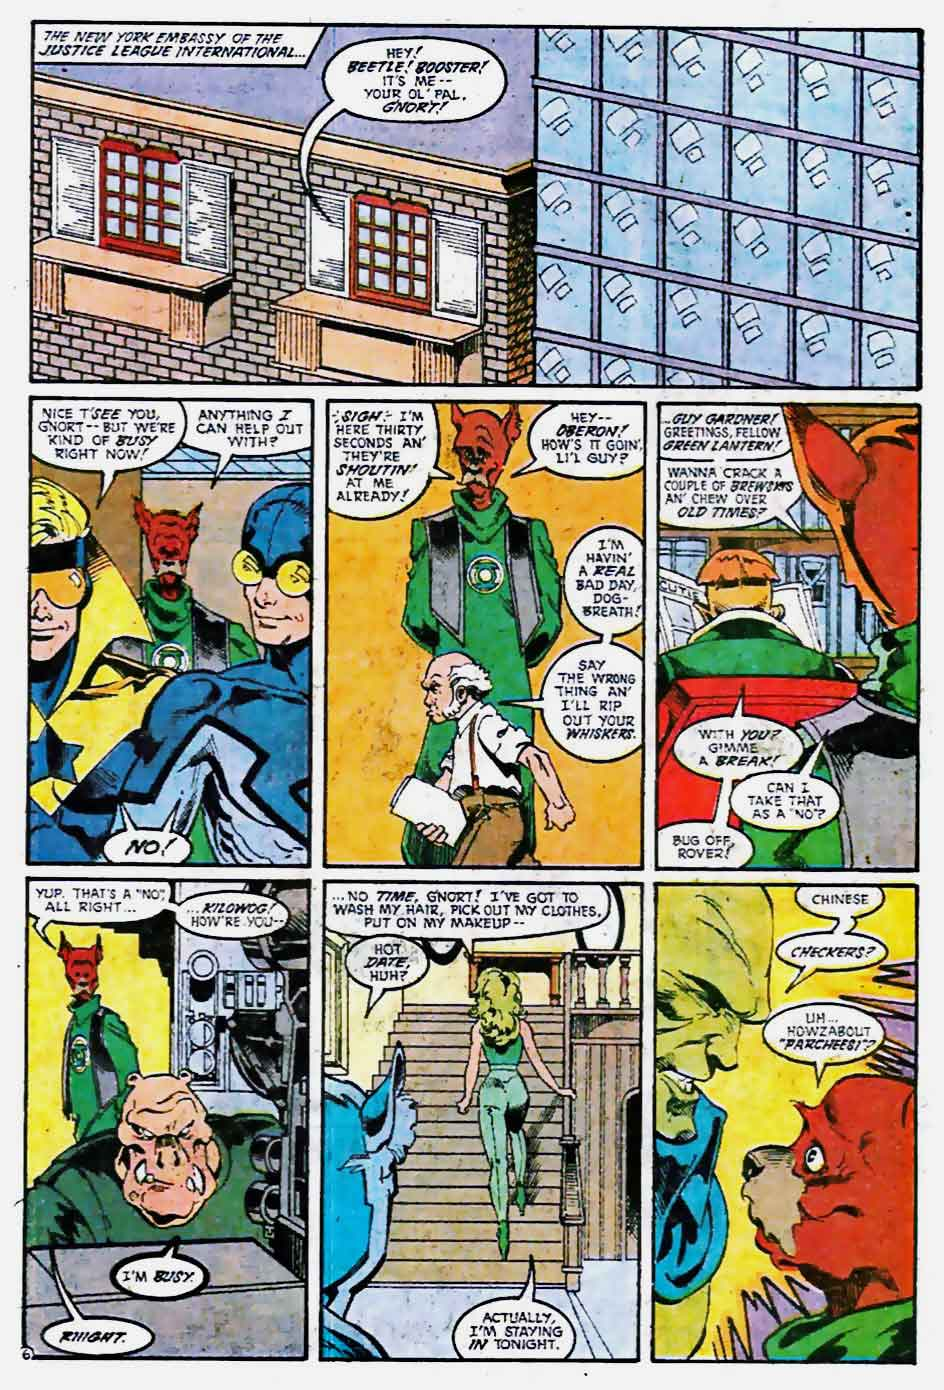 Justice League America #36 by Keith Giffen, J.M. DeMatteis, Tom Artis, and Art Nichols